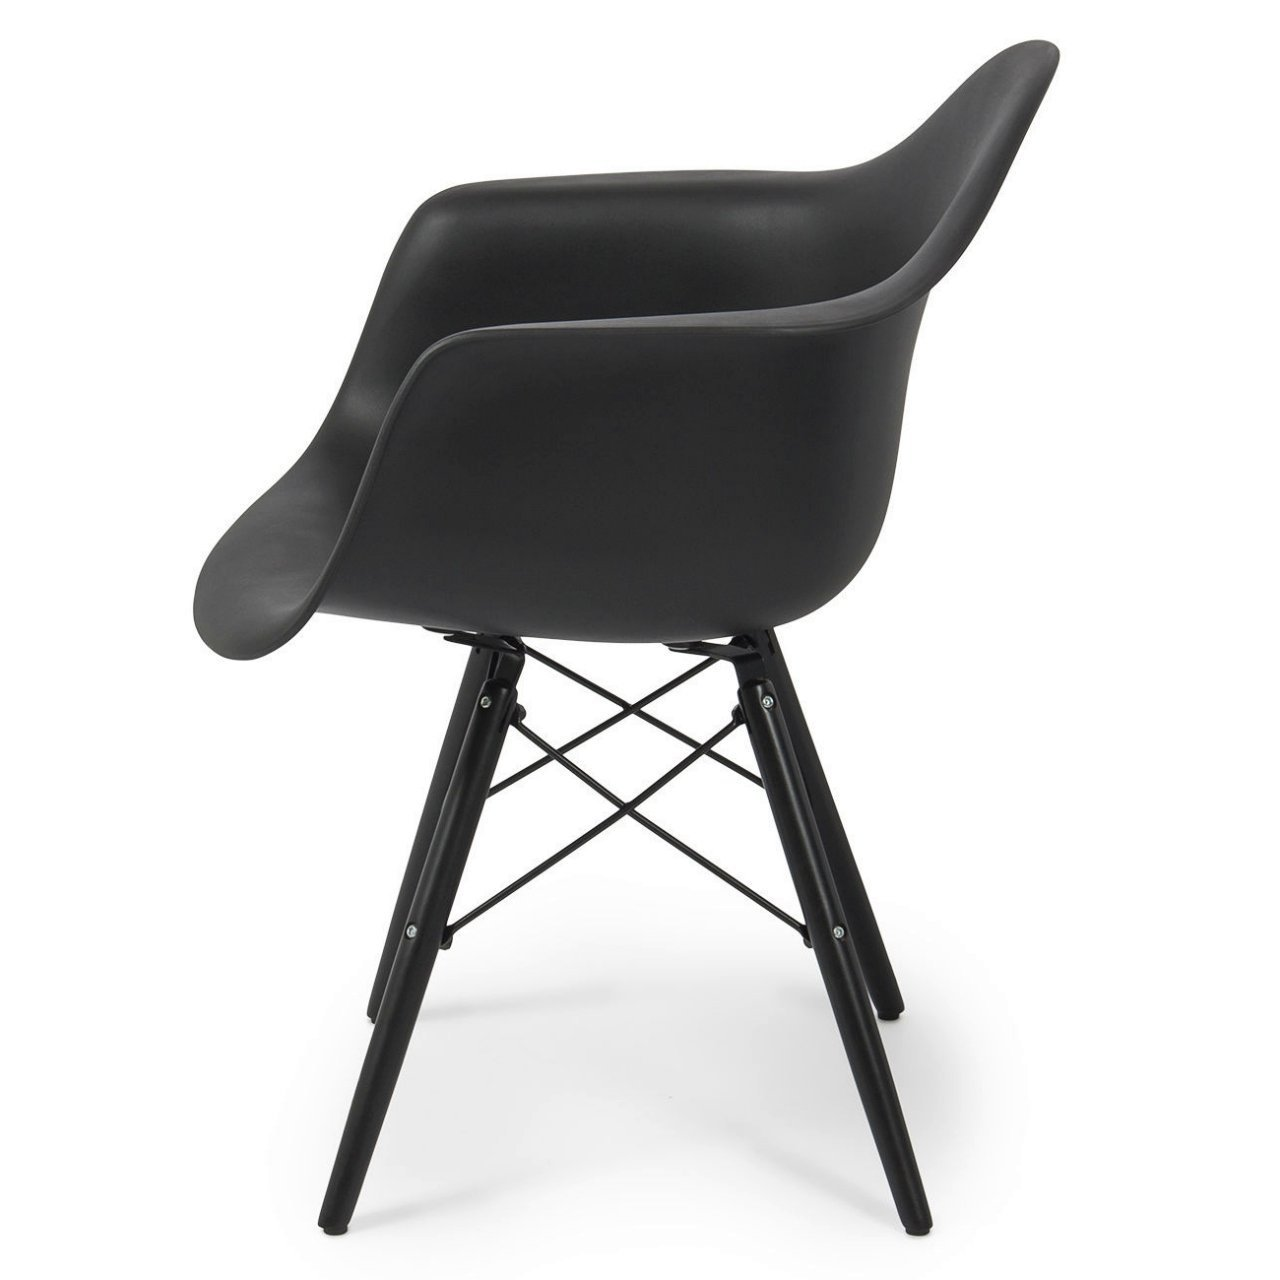 Modern Dining Chair Molded ABS Plastic Dowel Black Wooden Legs Posture Support Backrest Design Innovative Side Chair - Set of 2 Black #1442 by Koonlert@Shop (Image #2)